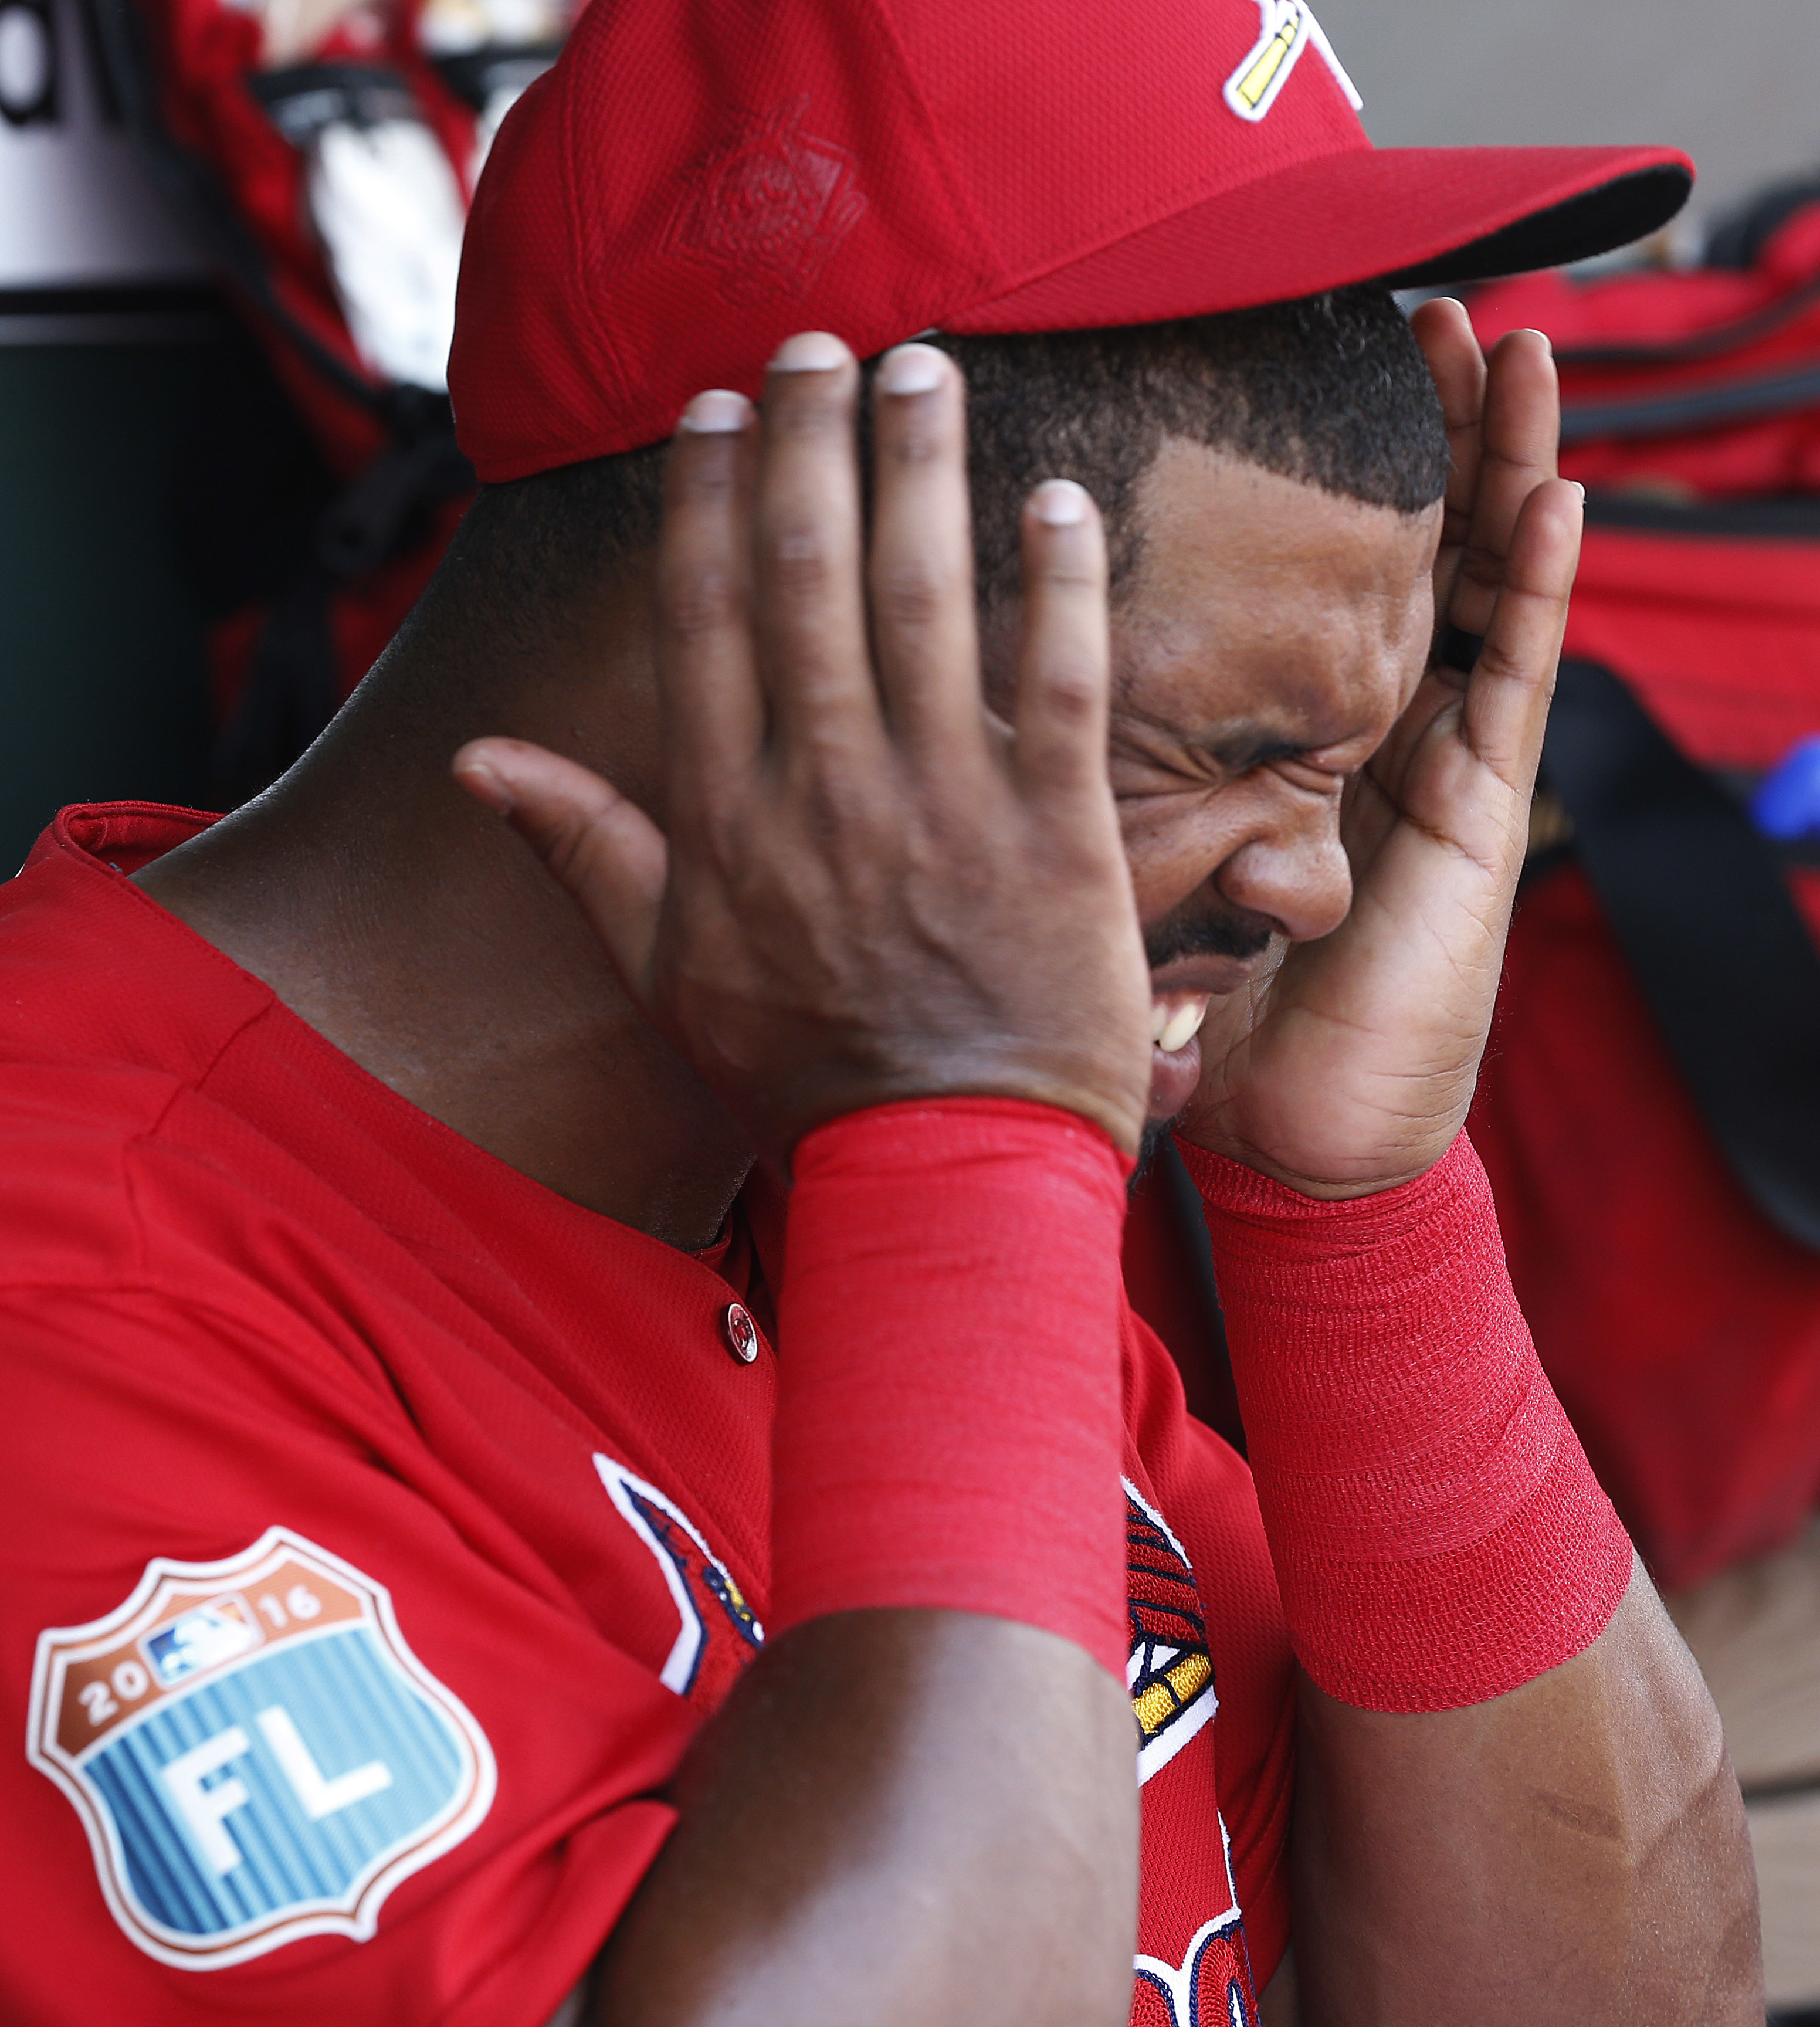 St. Louis Cardinals' Carlos Peguero, reacts to getting sunblock in his eyes in the dugout during the fourth inning of an exhibition spring training baseball game against the Detroit Tigers, Friday, March 18, 2016, in Jupiter, Fla. (AP Photo/Brynn Anderson